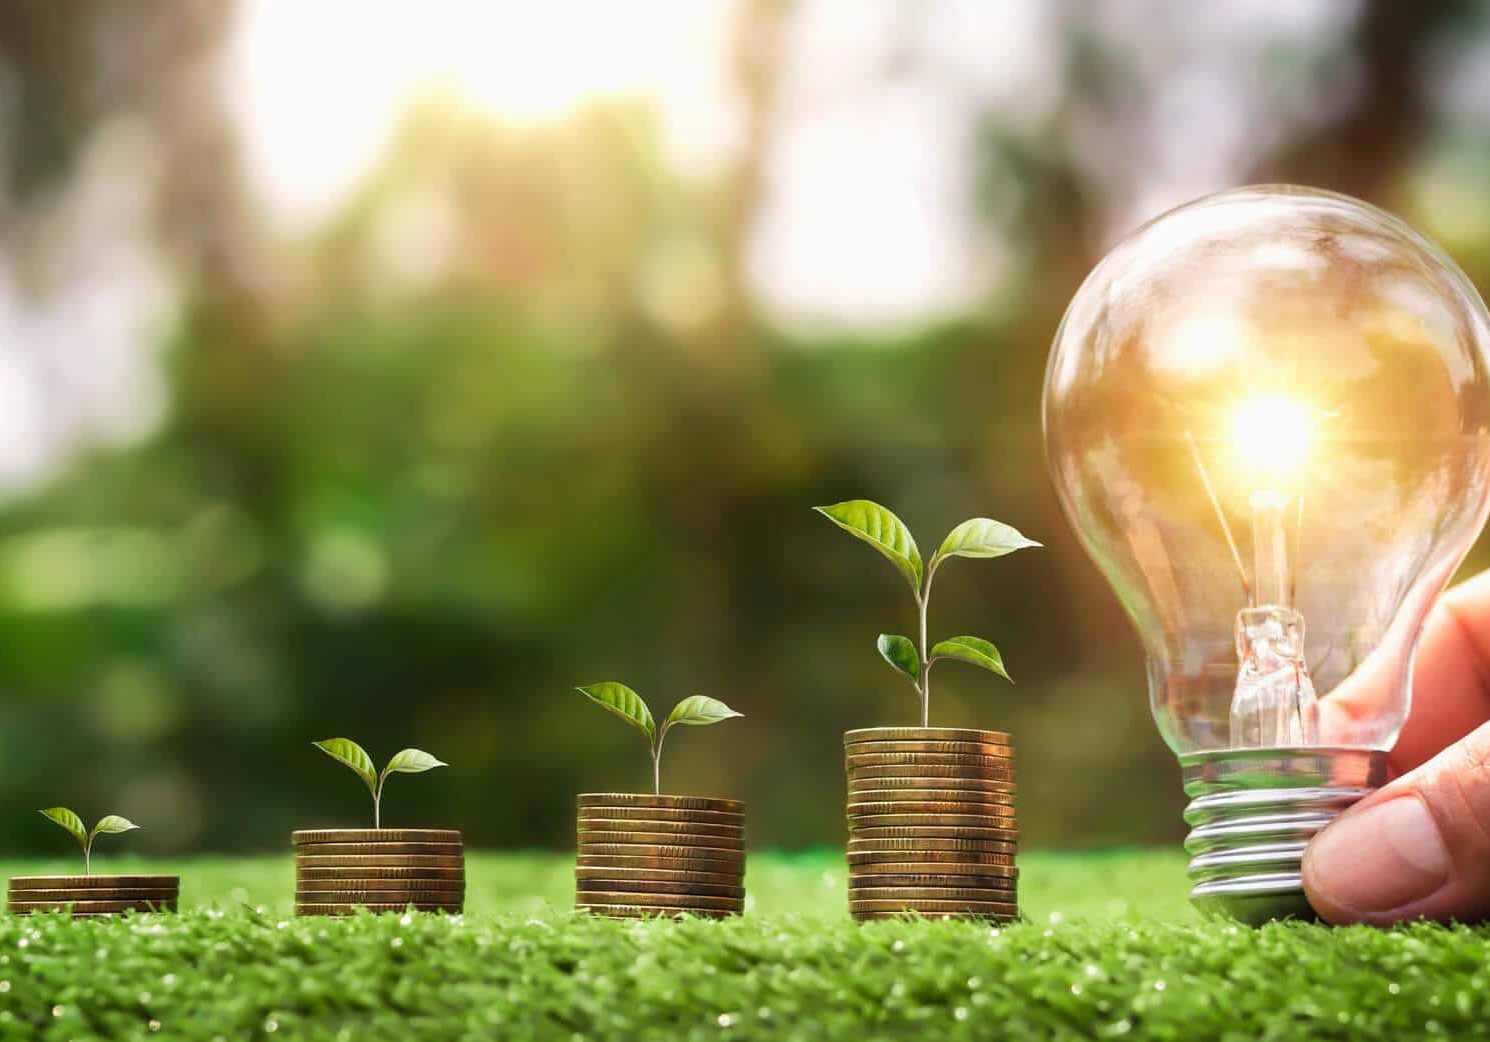 hand-holding-light-bulb-green-grass-with-young-plant-growing-coins-stack (1)